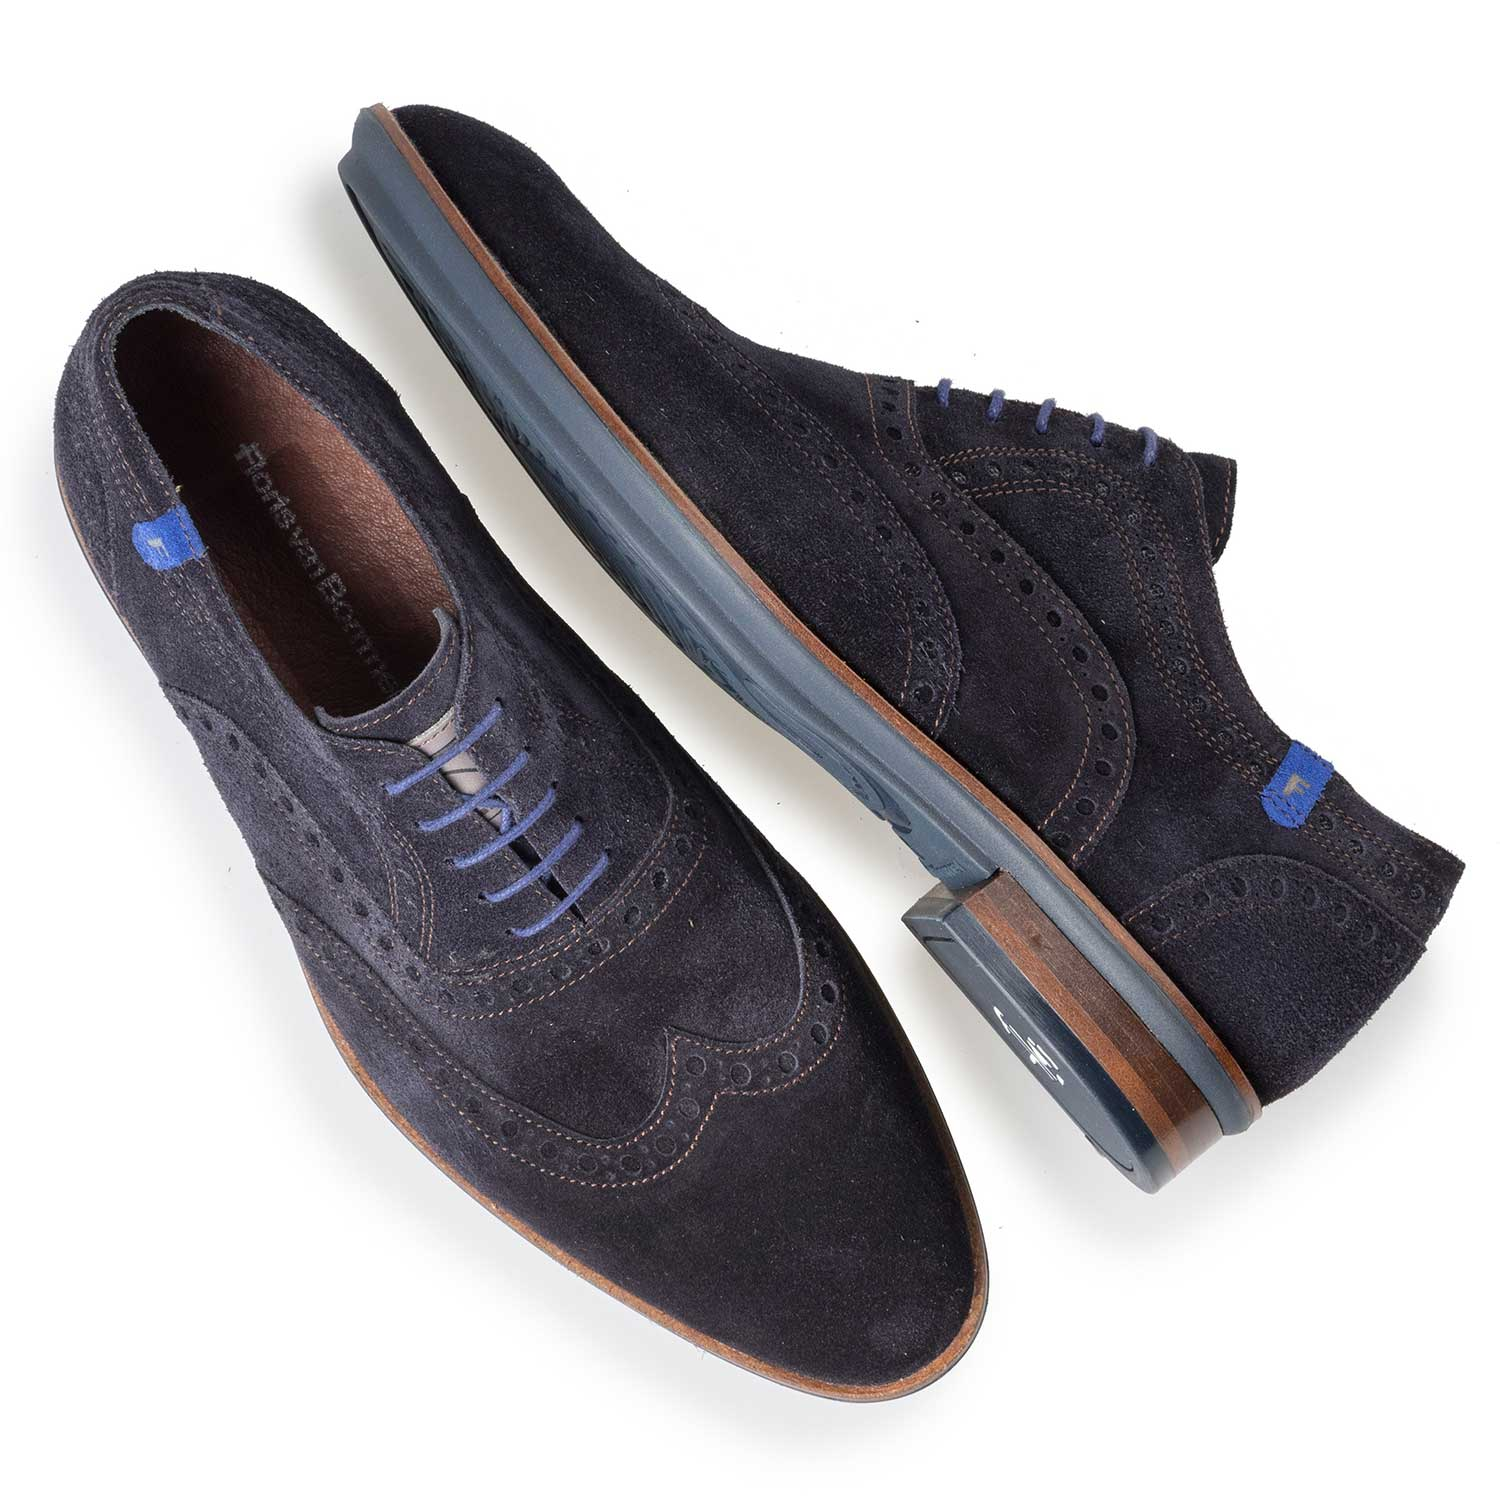 19048/03 - Blue brogue suede leather lace shoe